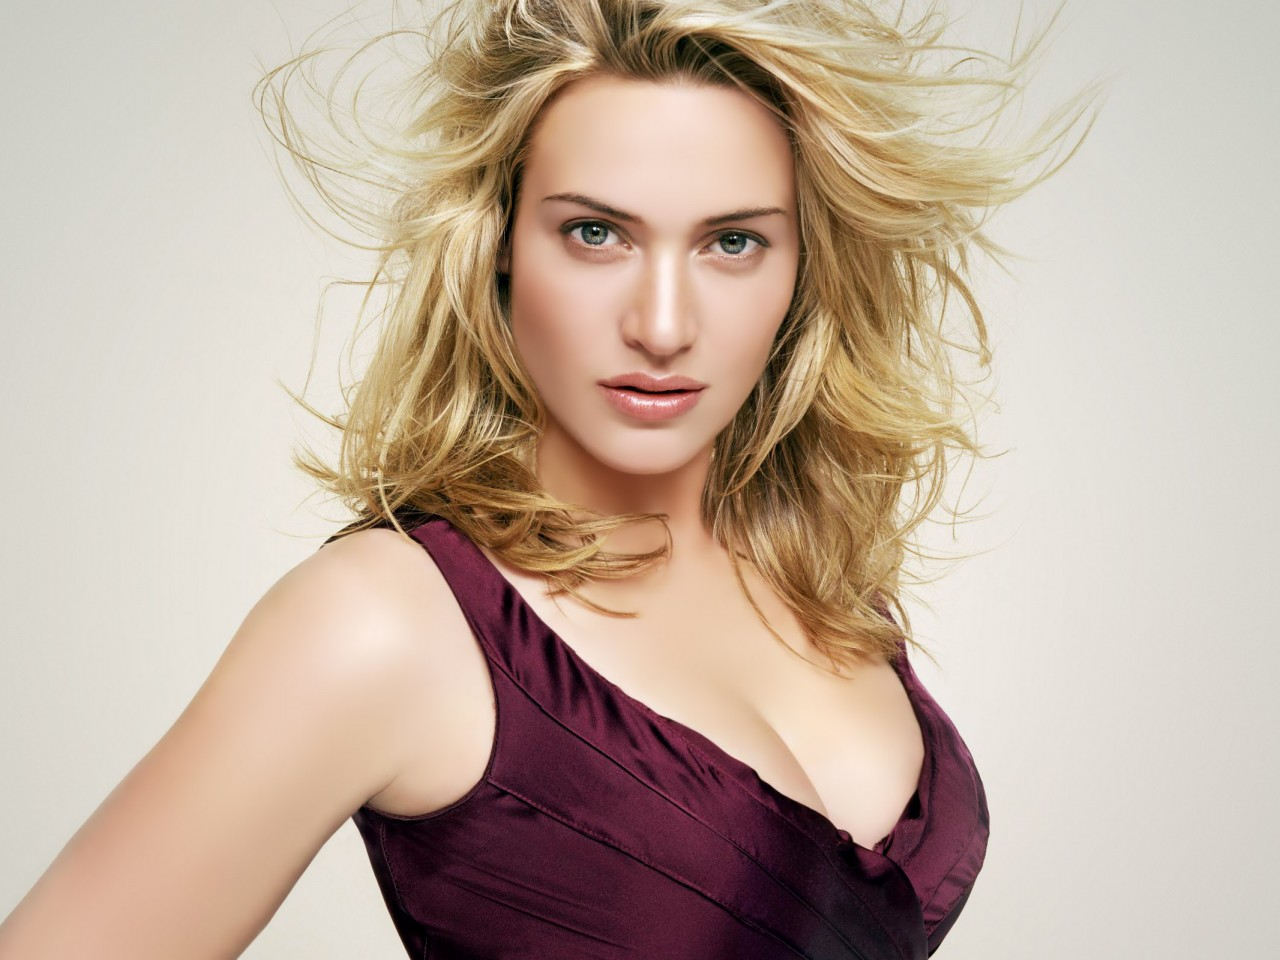 Kate Winslet Celebrity HD Wallpaper